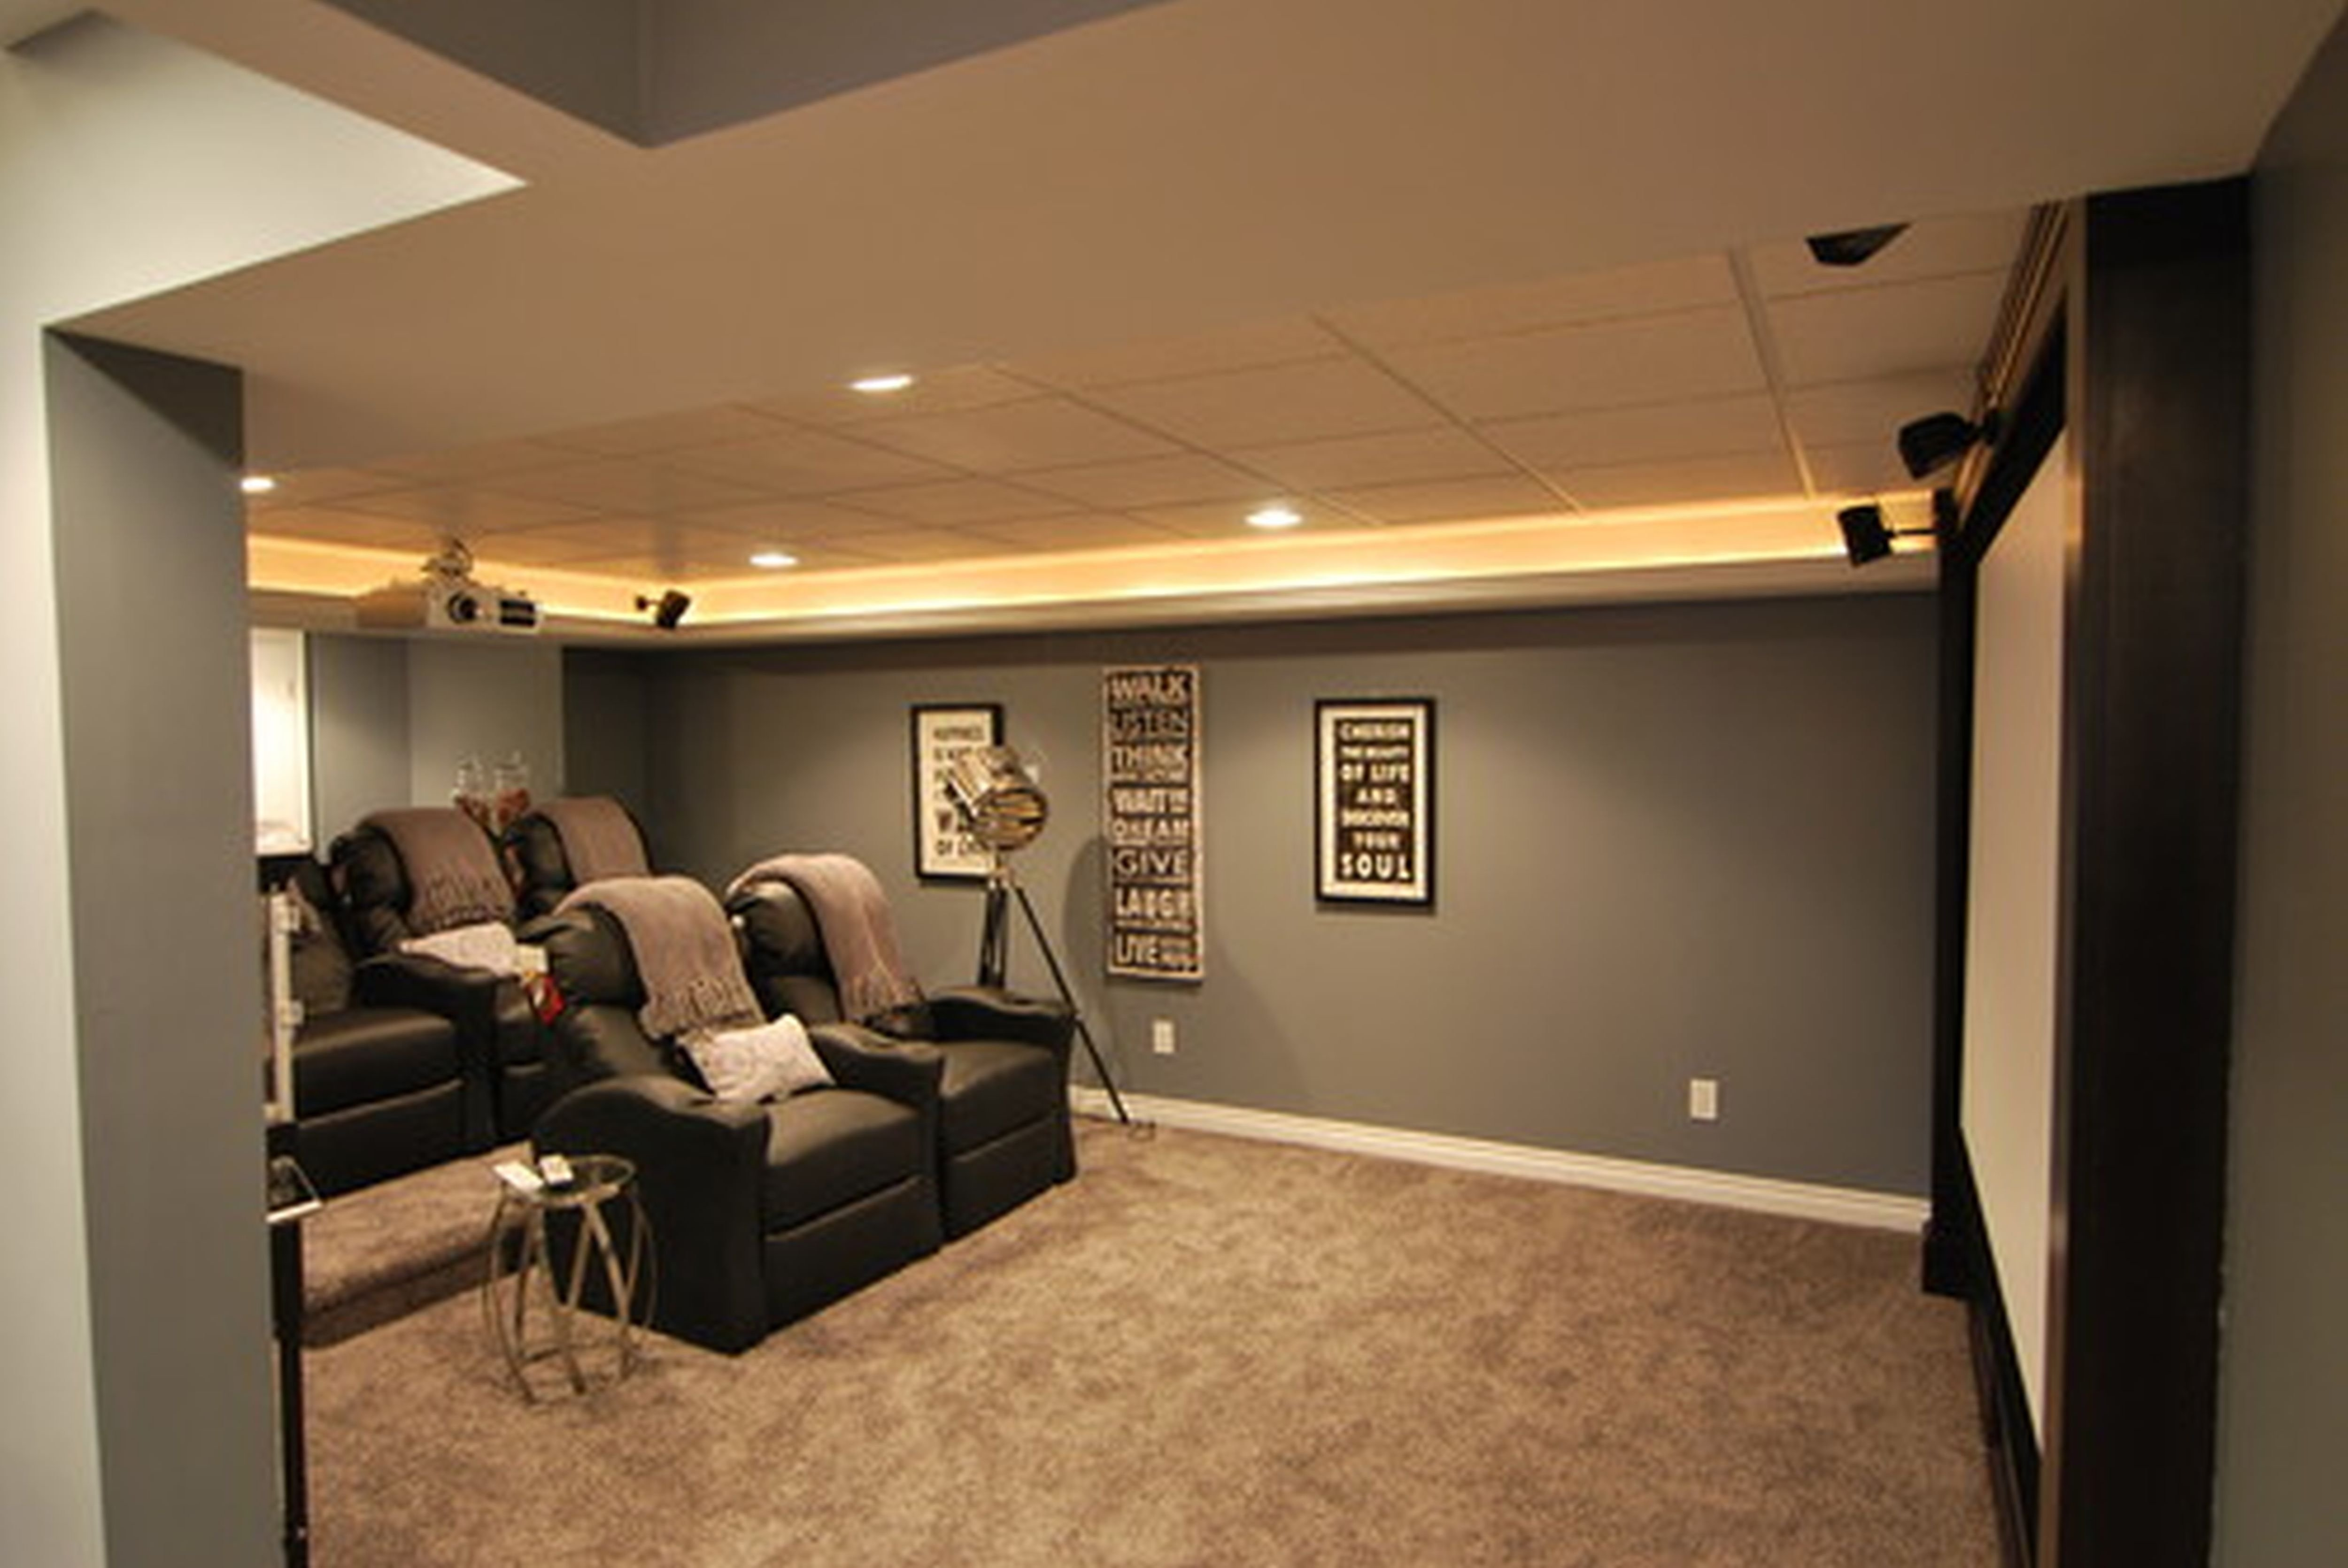 10 Stunning Finished Basement Ideas On A Budget brilliant finished basement ideas design finishing cheap and ideas 2020